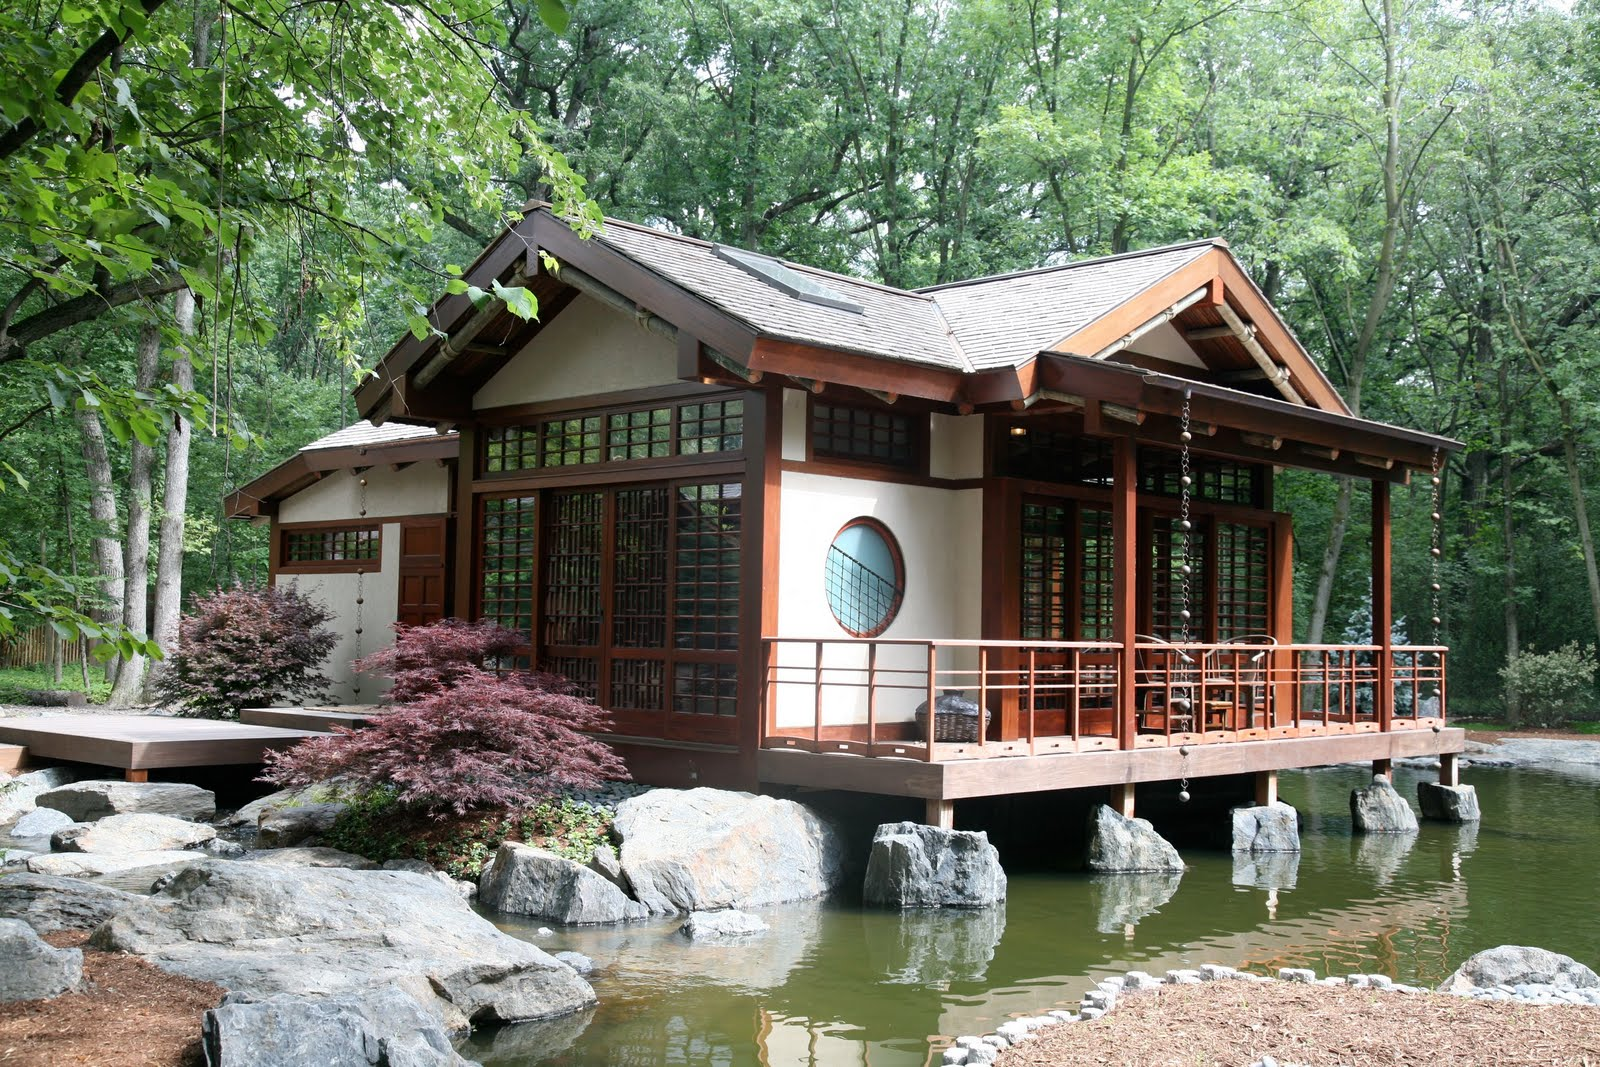 Grabill windows and doors asian inspired tea house for Modern japanese tea house design